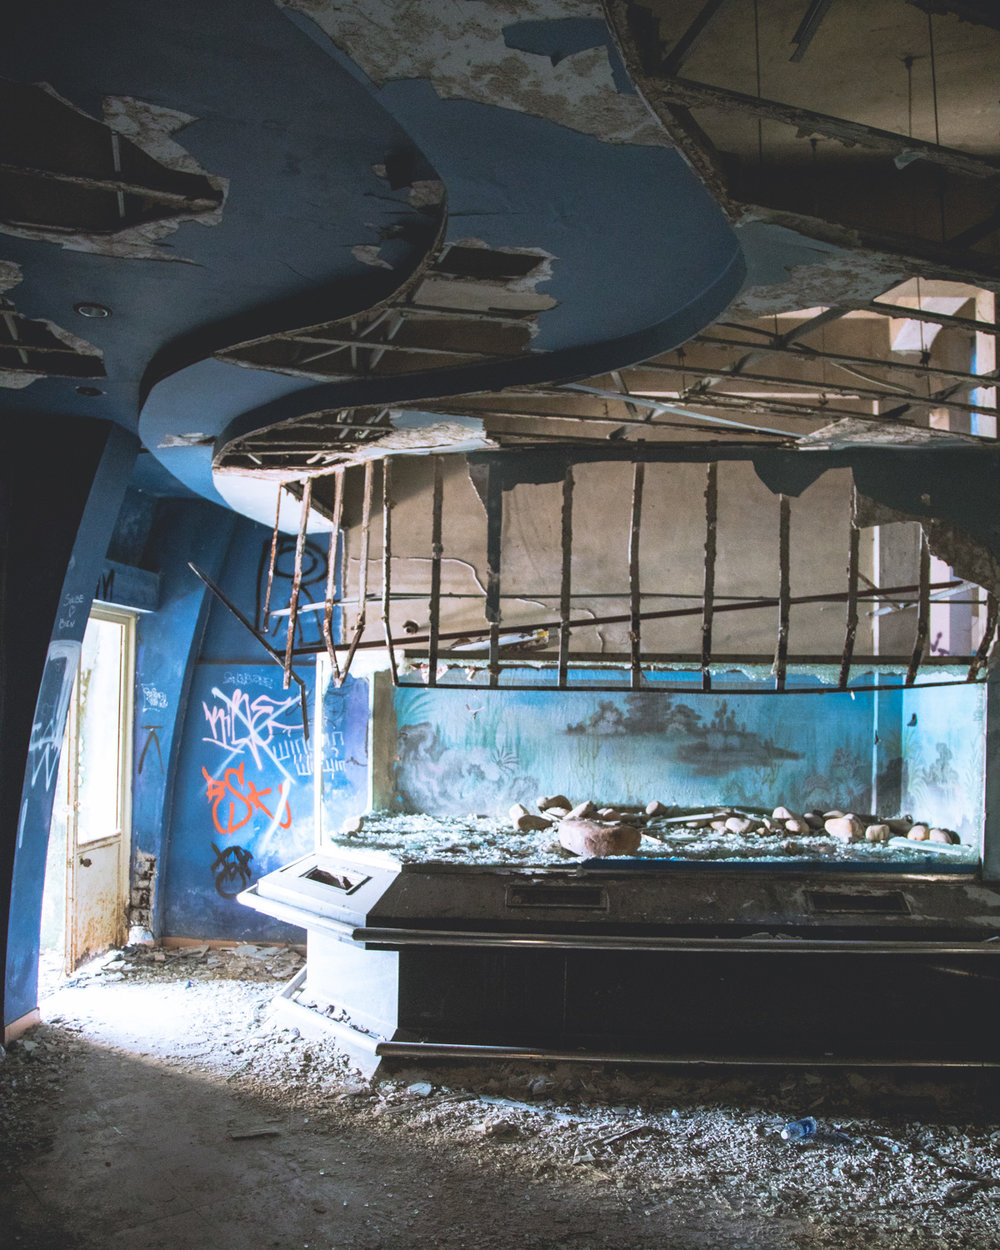 The Aquarium at the Abandoned water park in Hue